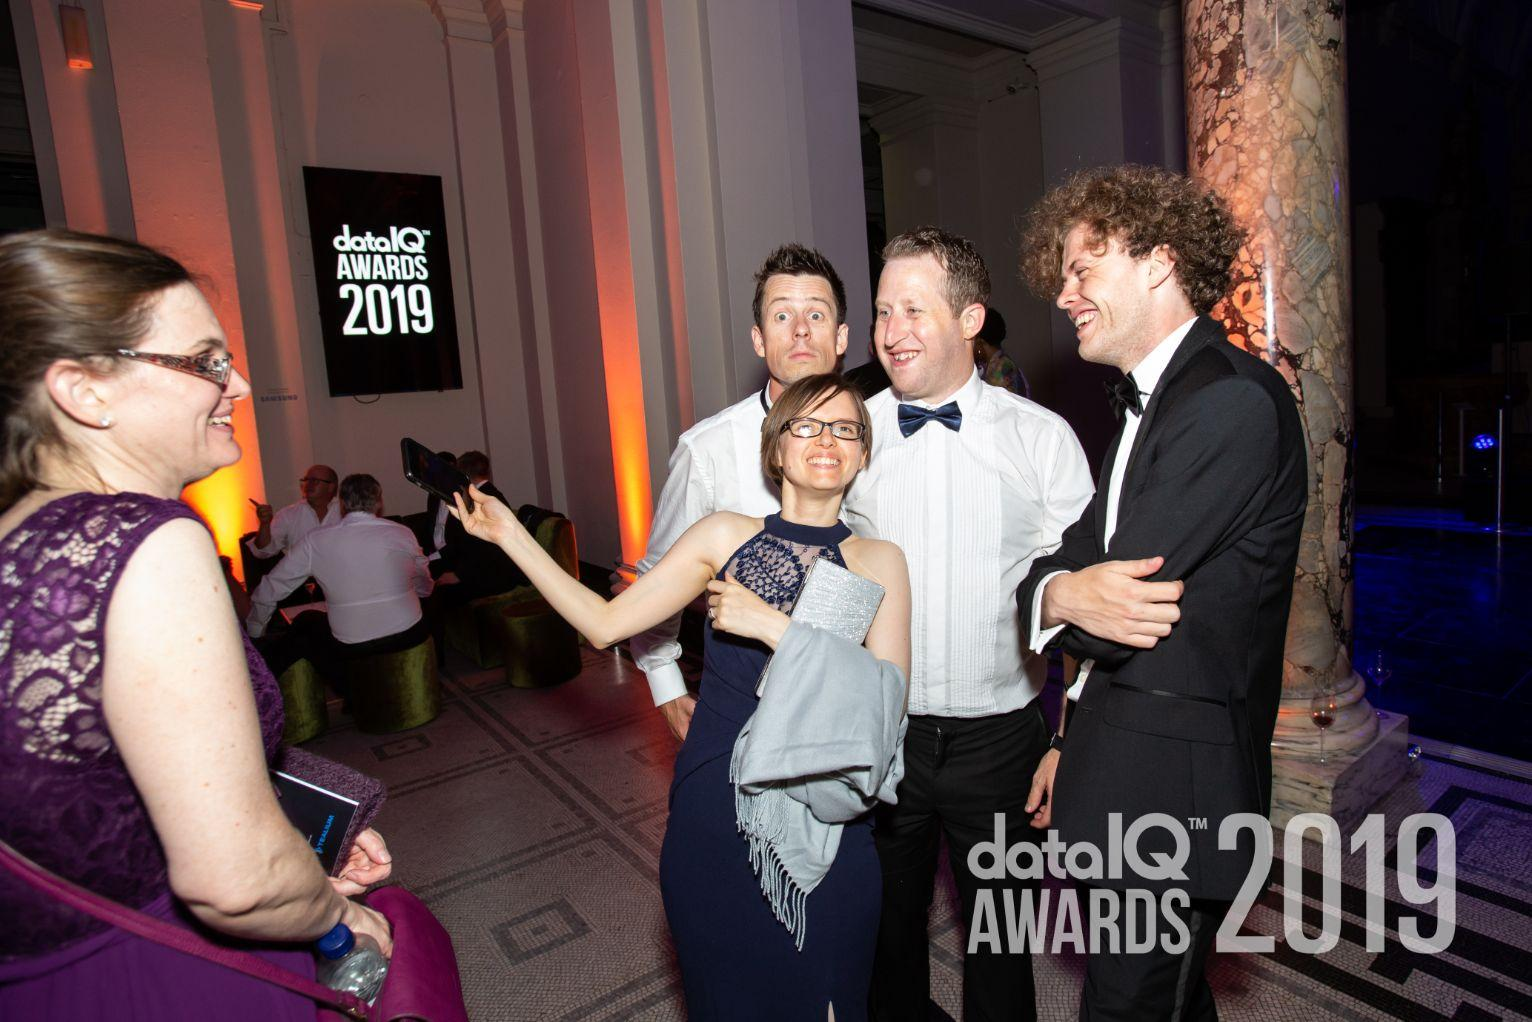 Awards 2019 Image 131